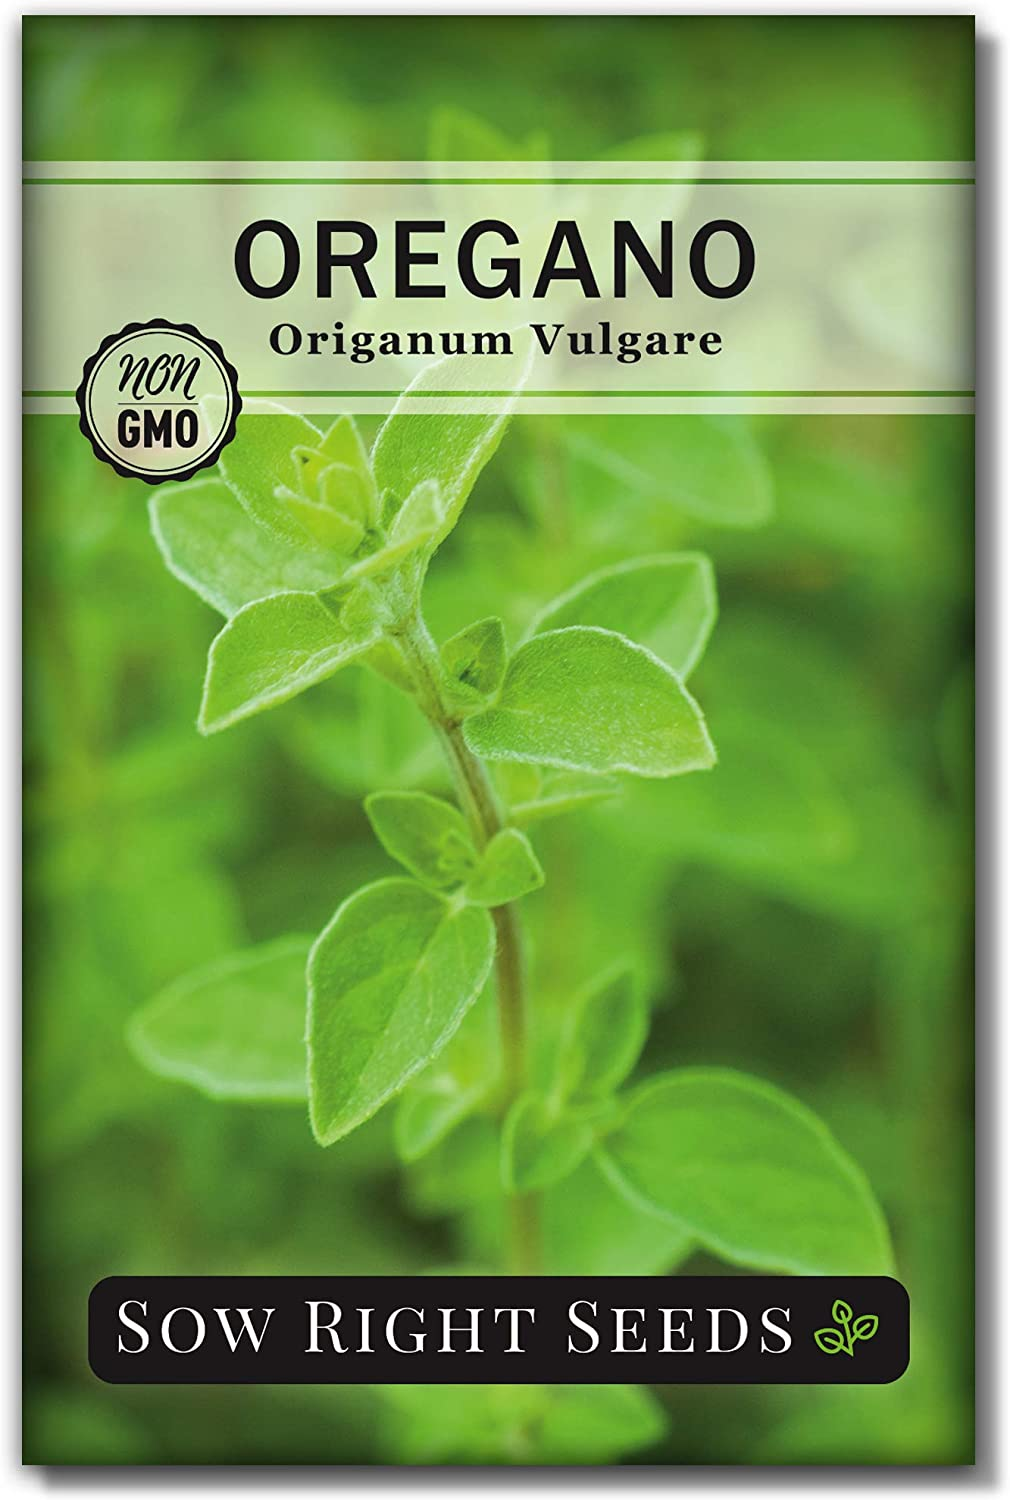 Sow Right Seeds - Oregano Seed for Non-GMO Planting; Max 62% OFF Over item handling ☆ I Heirloom;